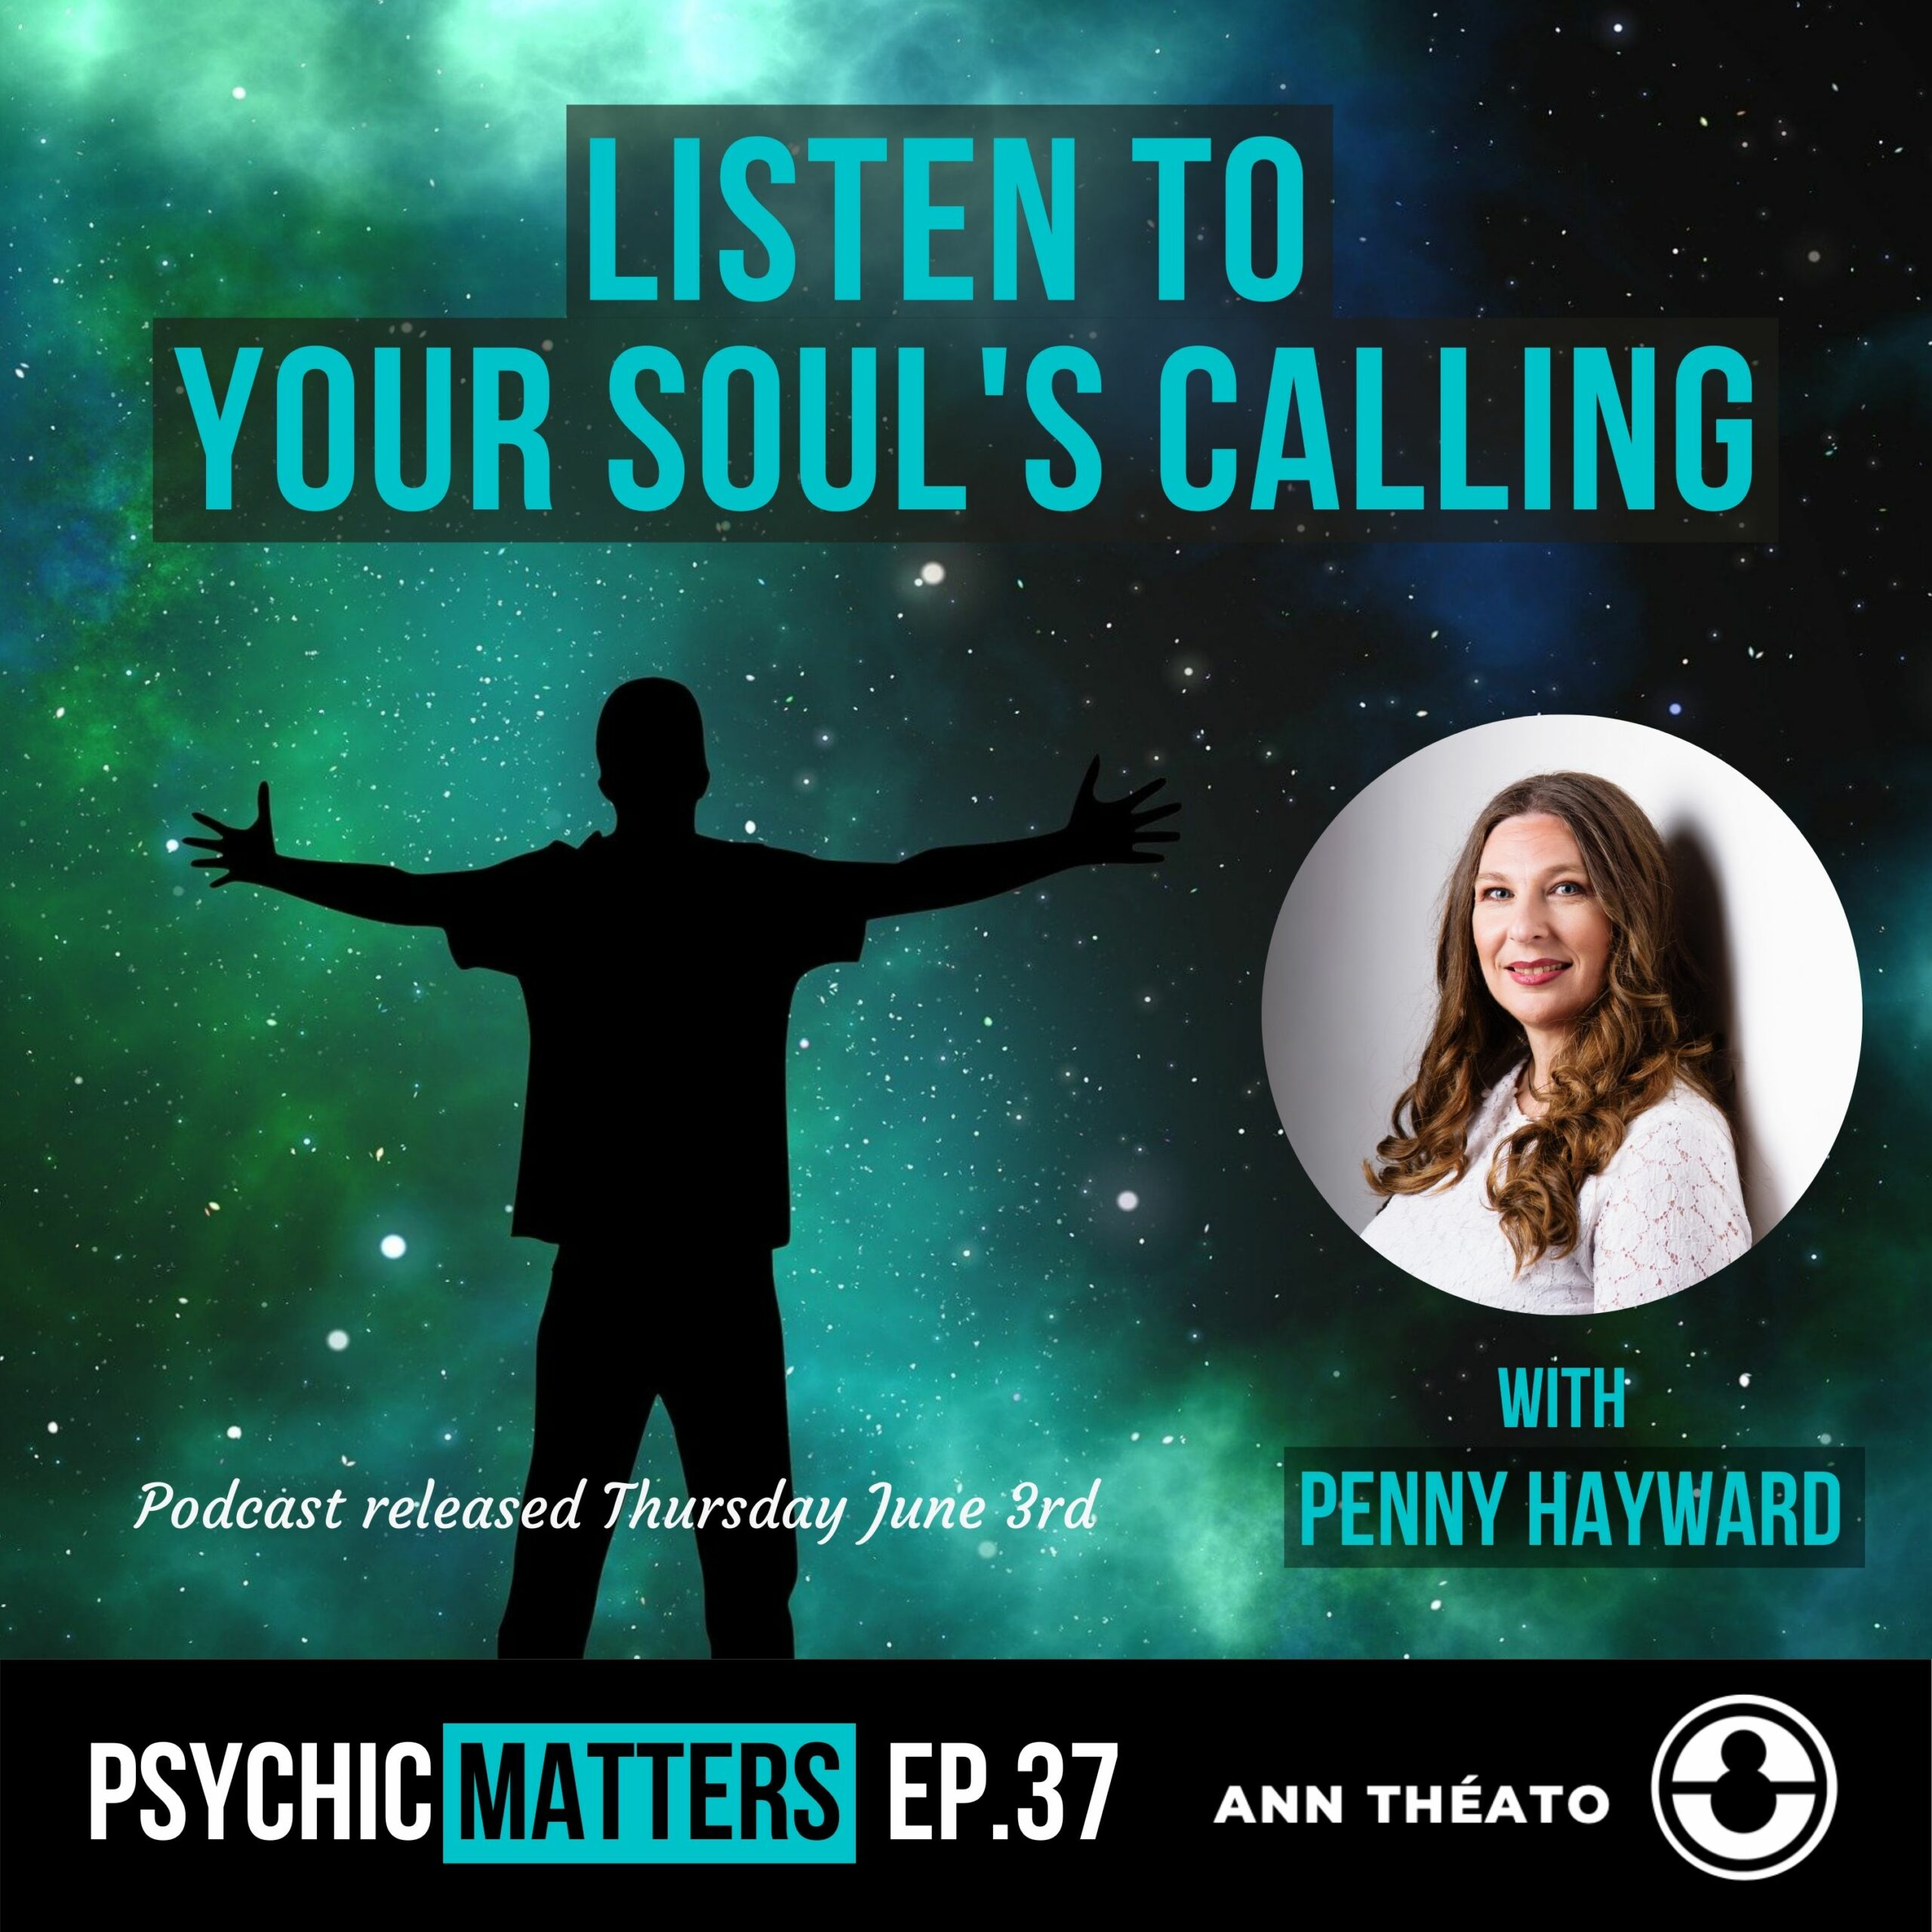 Episode 37 - Listen To Your Soul's Calling